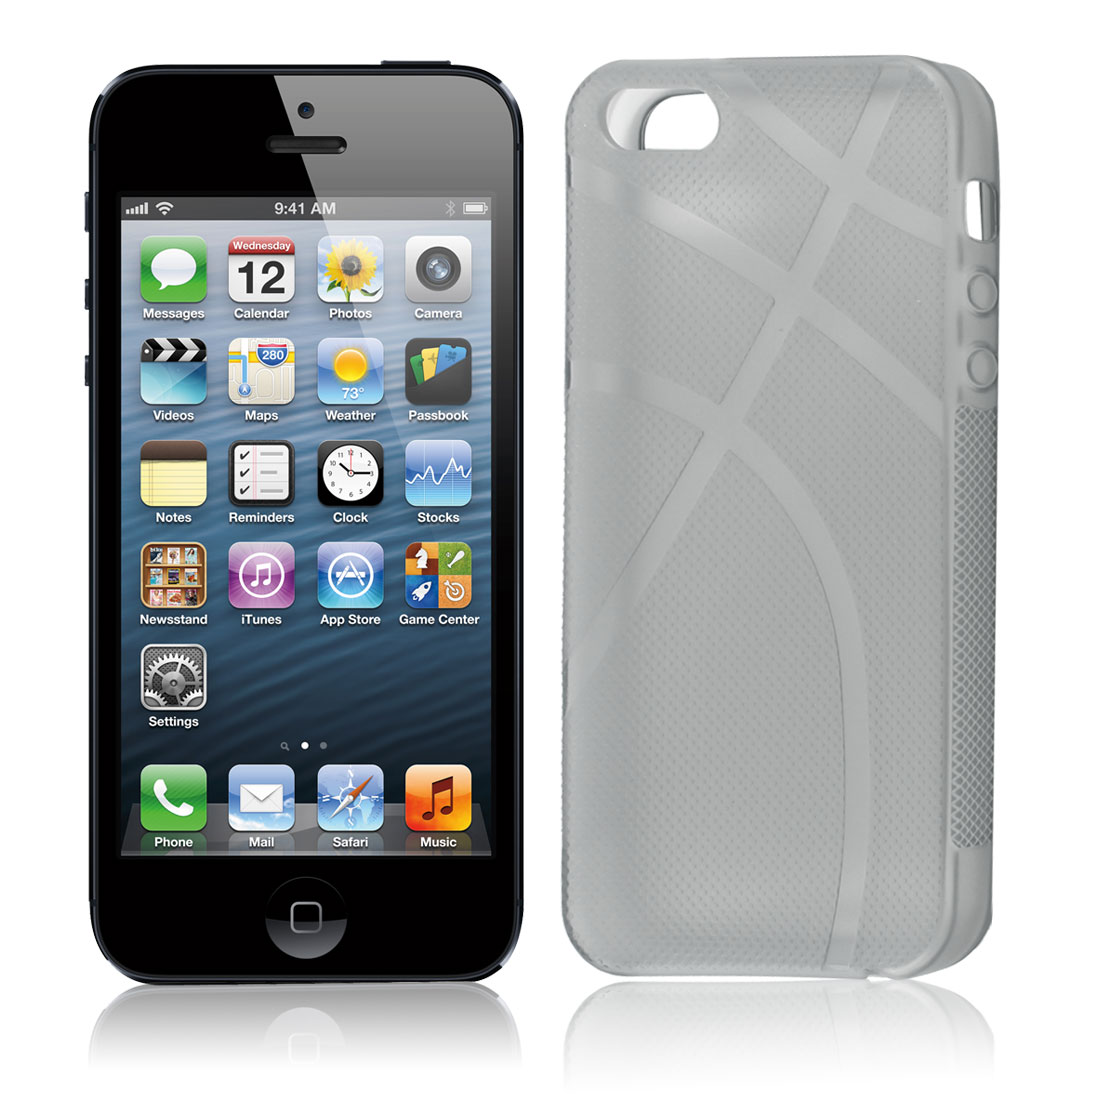 Clear Gray Rubber Basketball Print Protective Case Cover for Apple iPhone 5 5G 5Gen